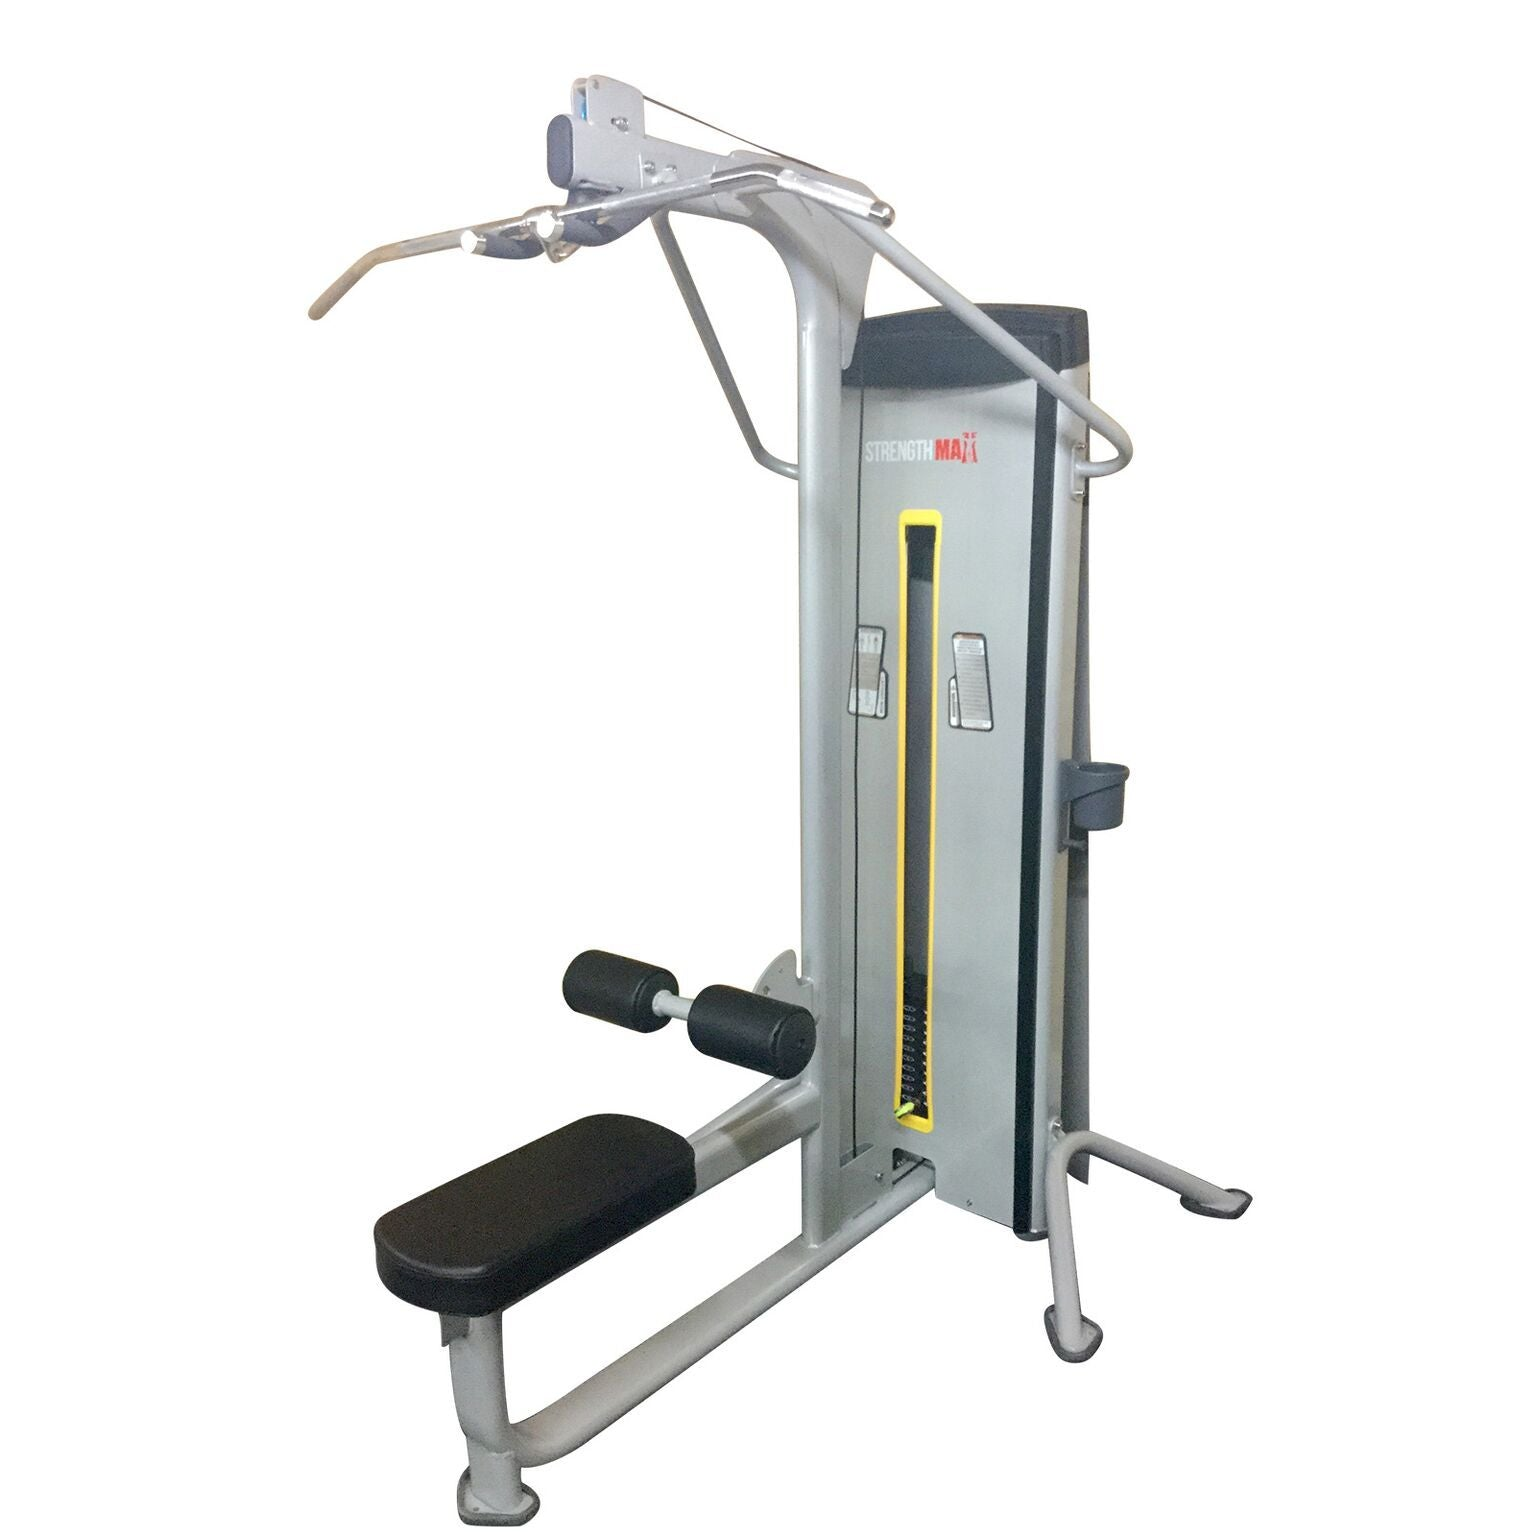 Commercial Gym Equipment Suppliers: Strength And Fitness Supplies